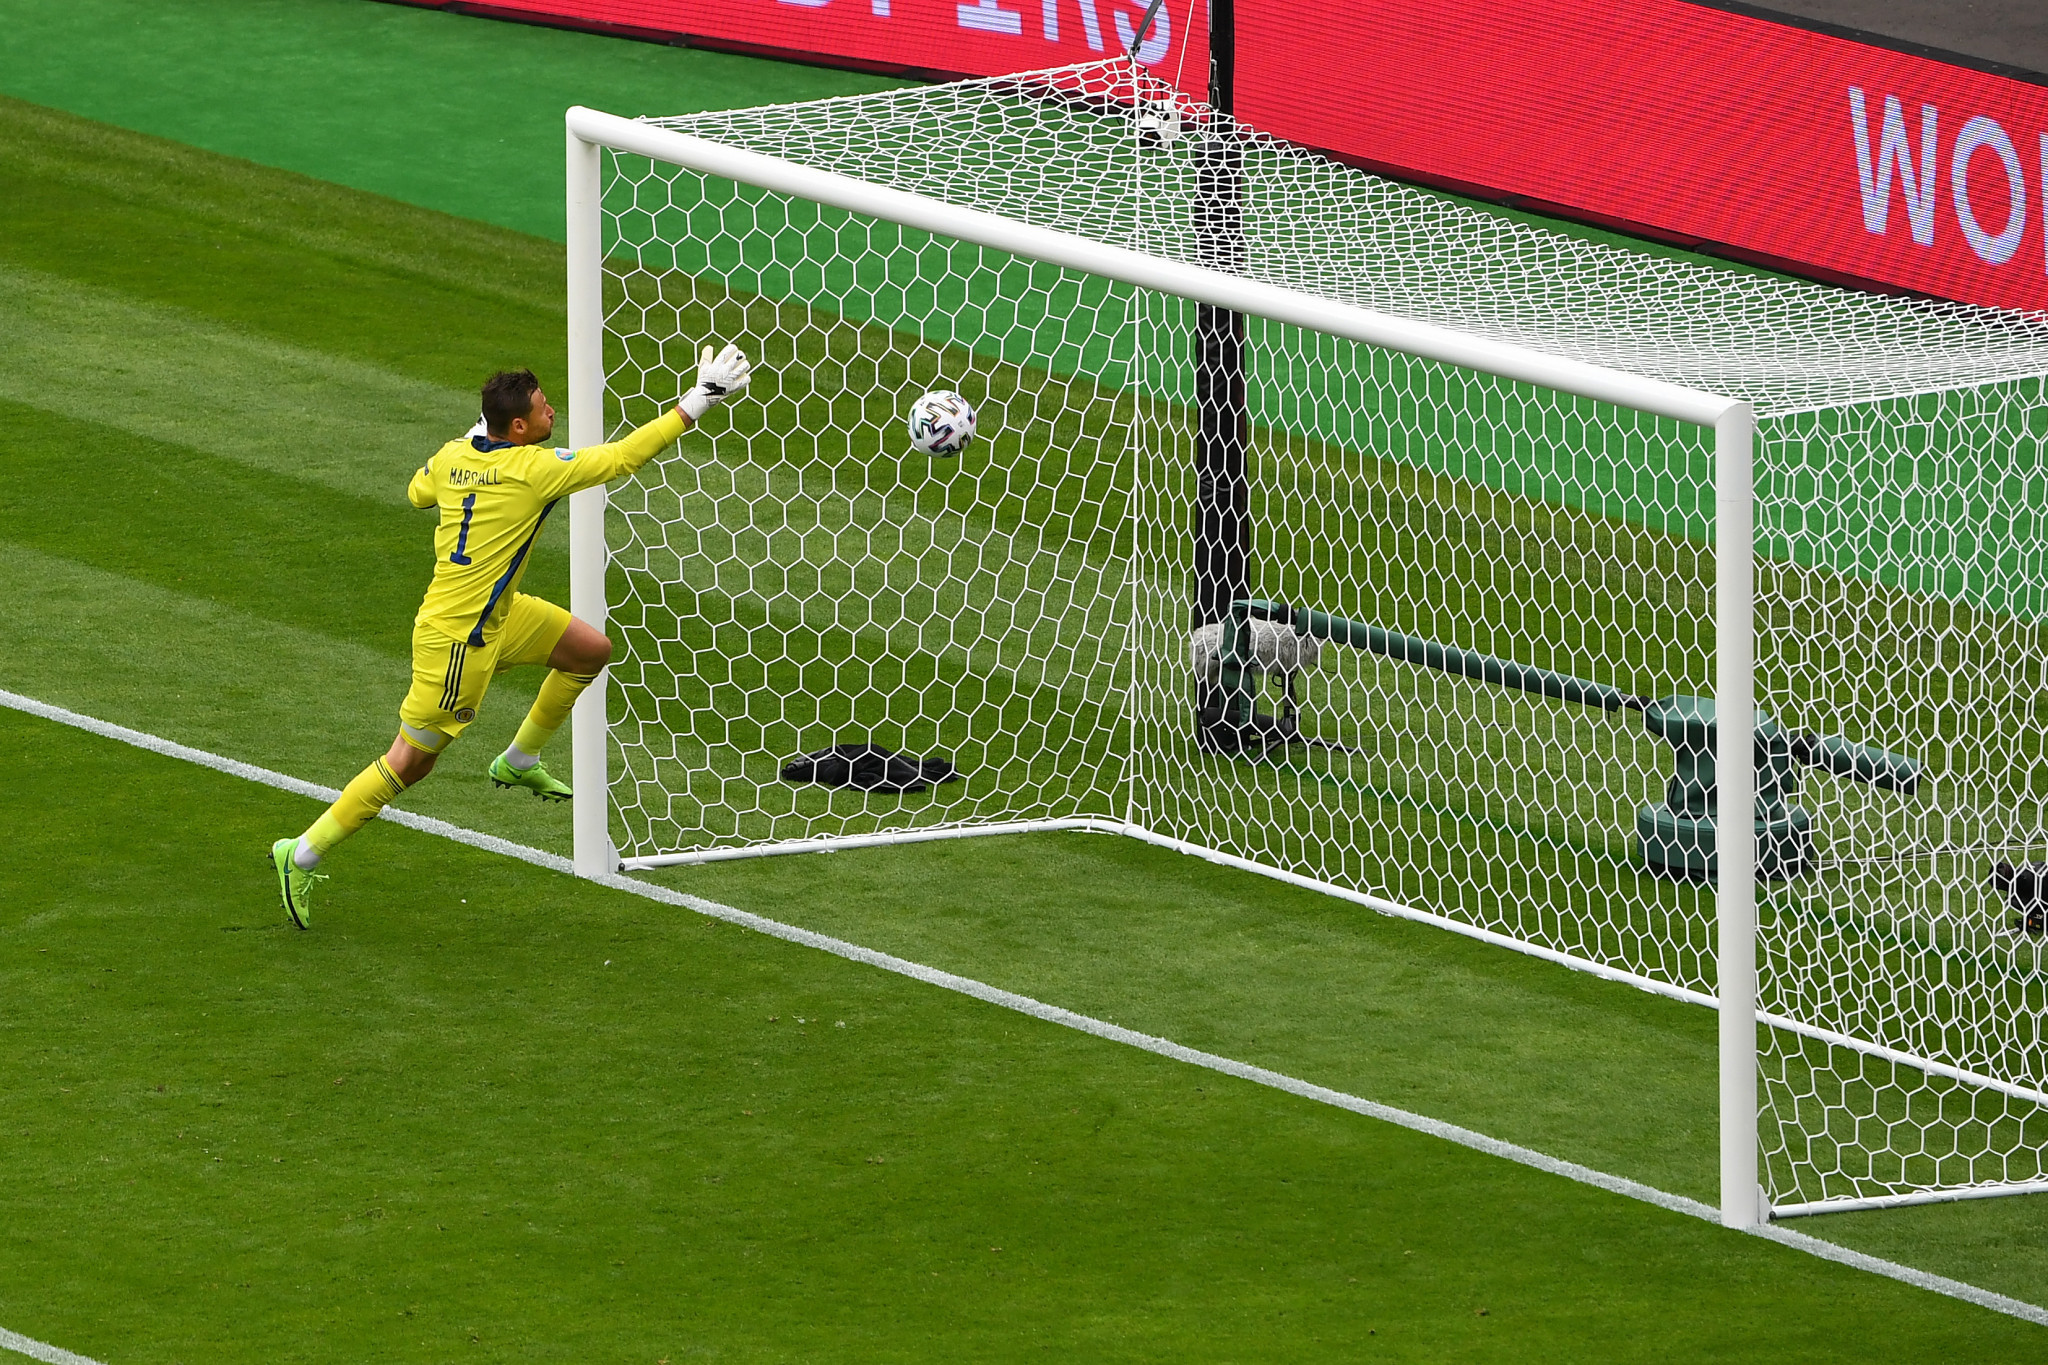 Schick from the halfway line gives Czech Republic spectacular Euro 2020 start